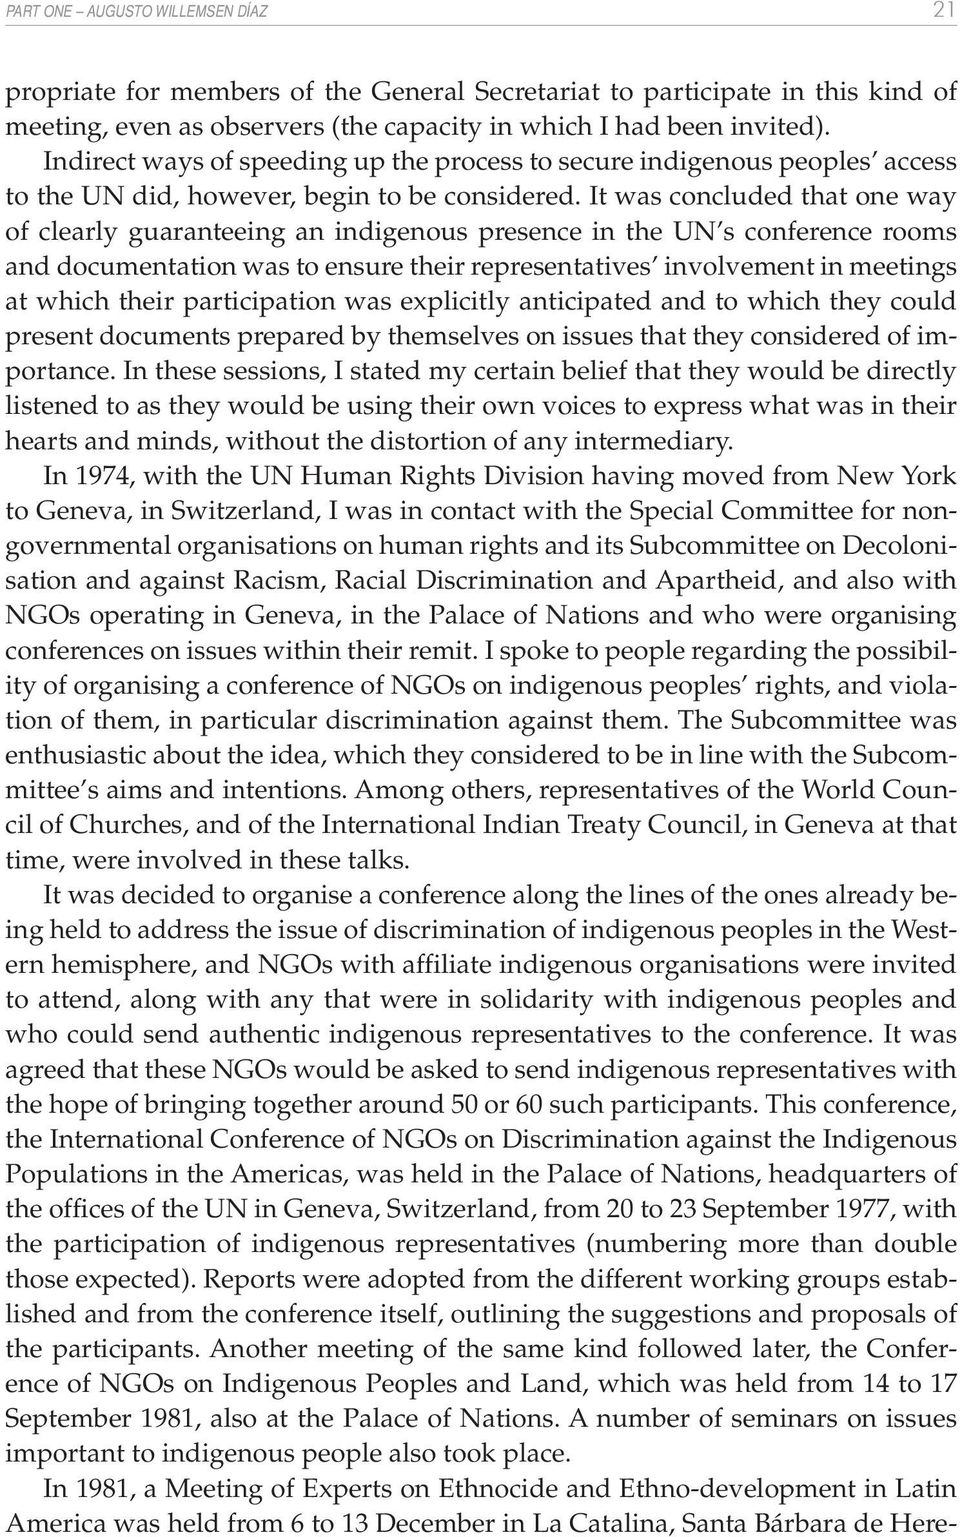 It was concluded that one way of clearly guaranteeing an indigenous presence in the UN s conference rooms and documentation was to ensure their representatives involvement in meetings at which their